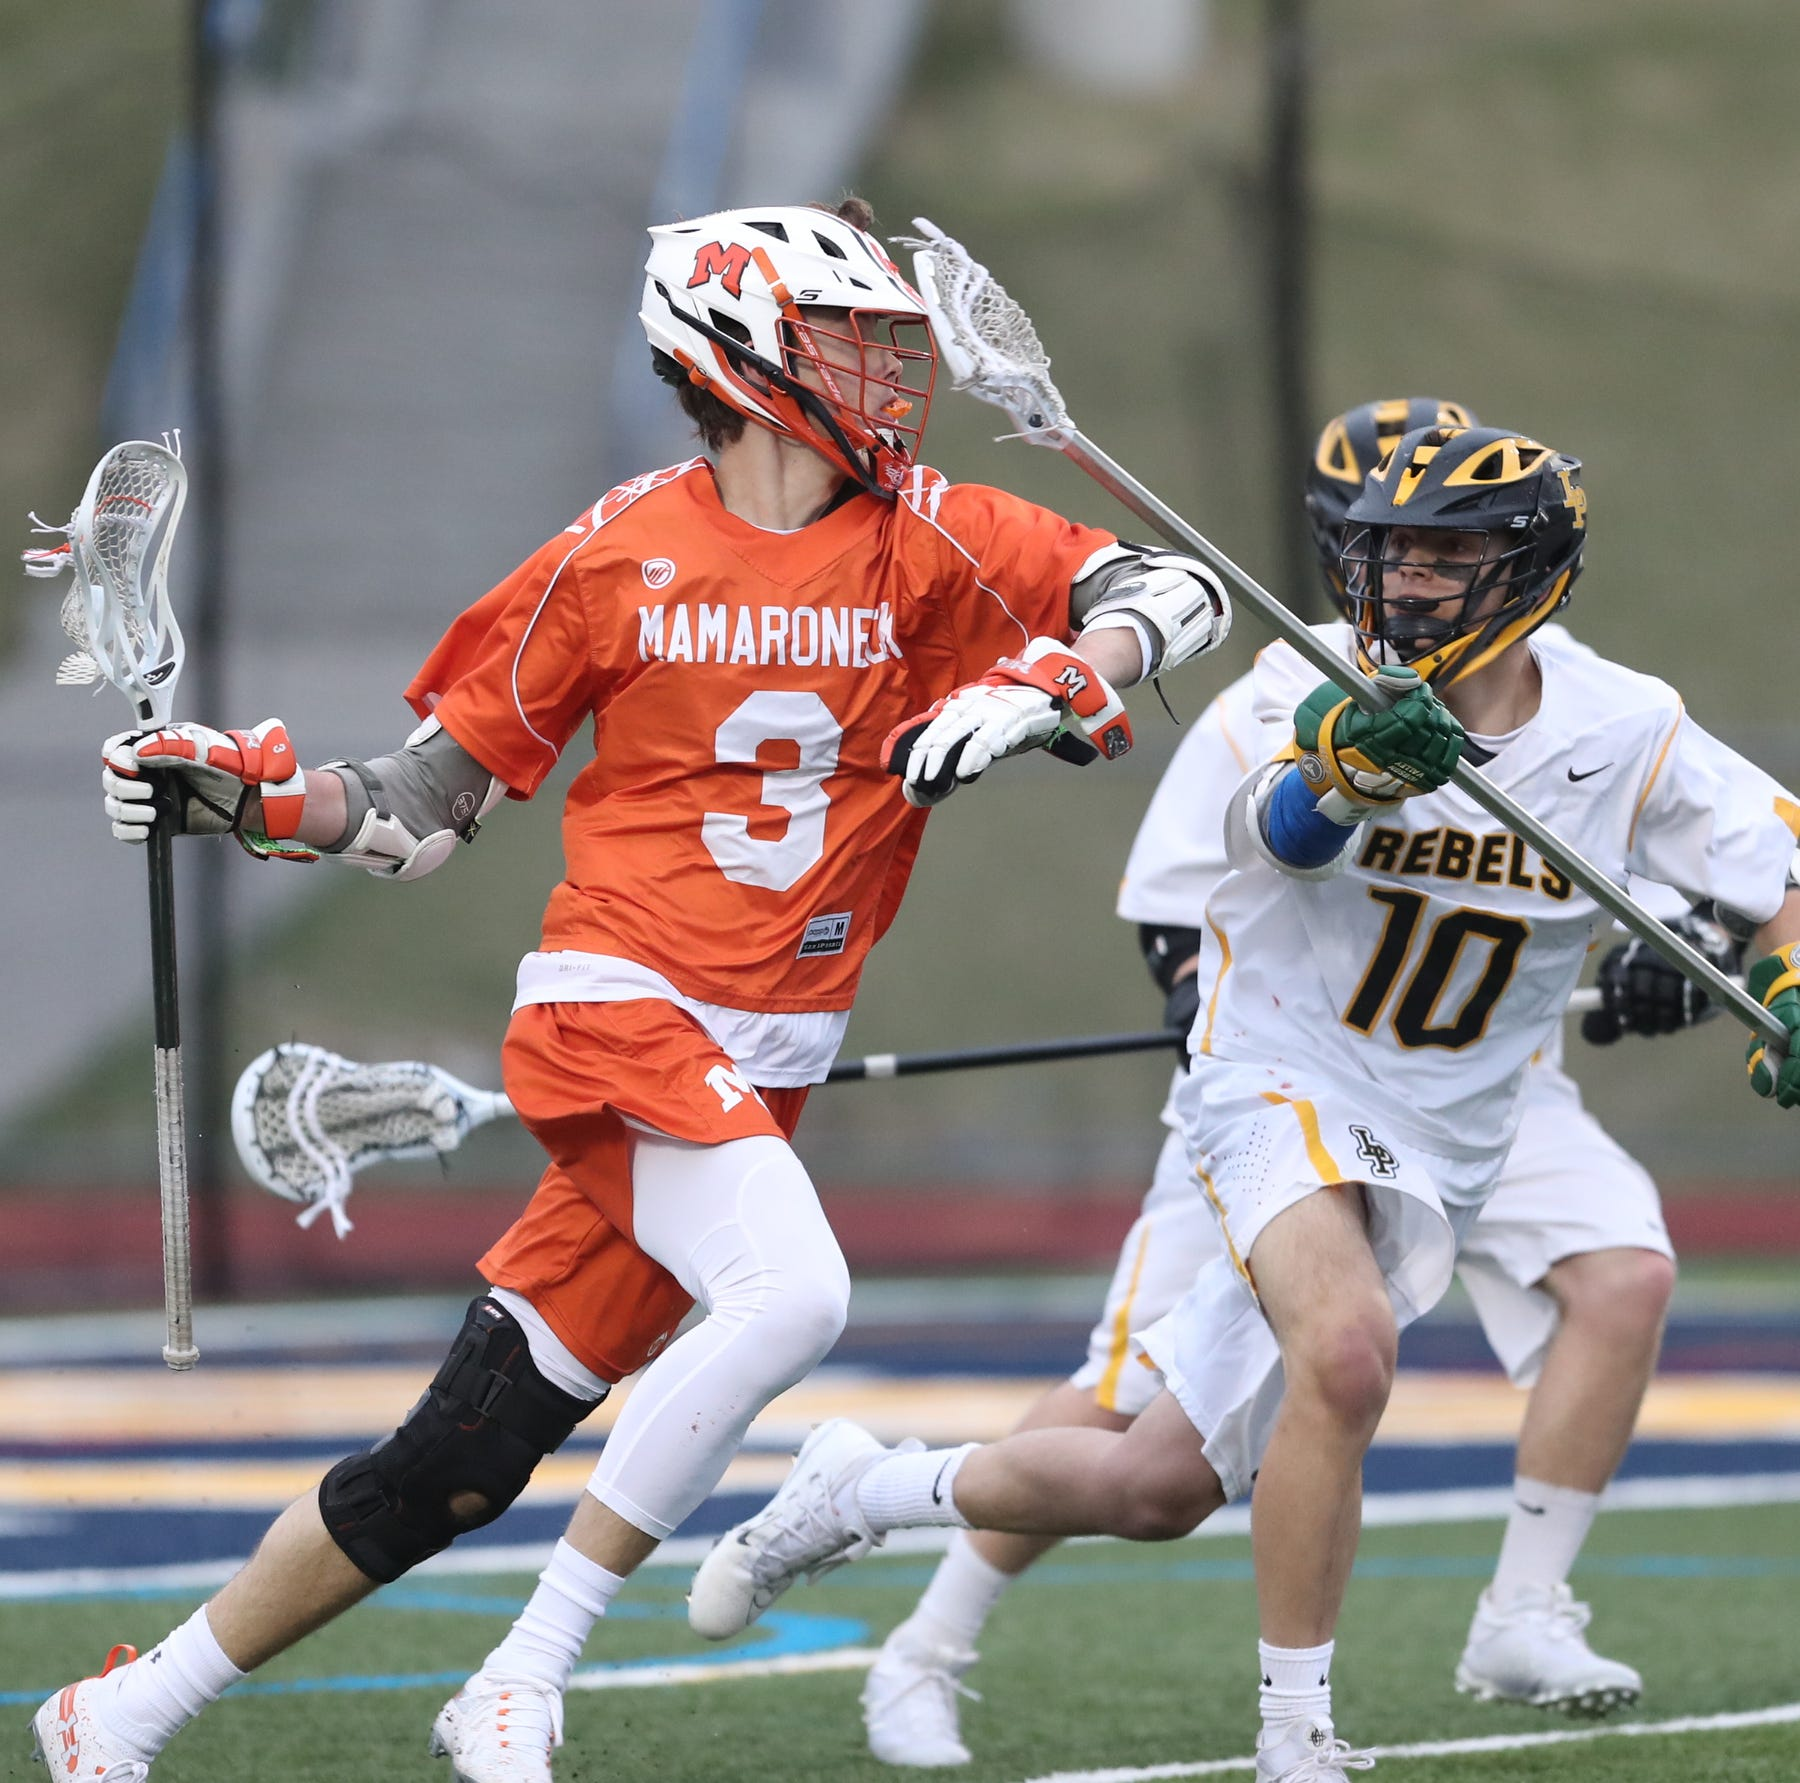 Vote for the lohud boys lacrosse player of the week